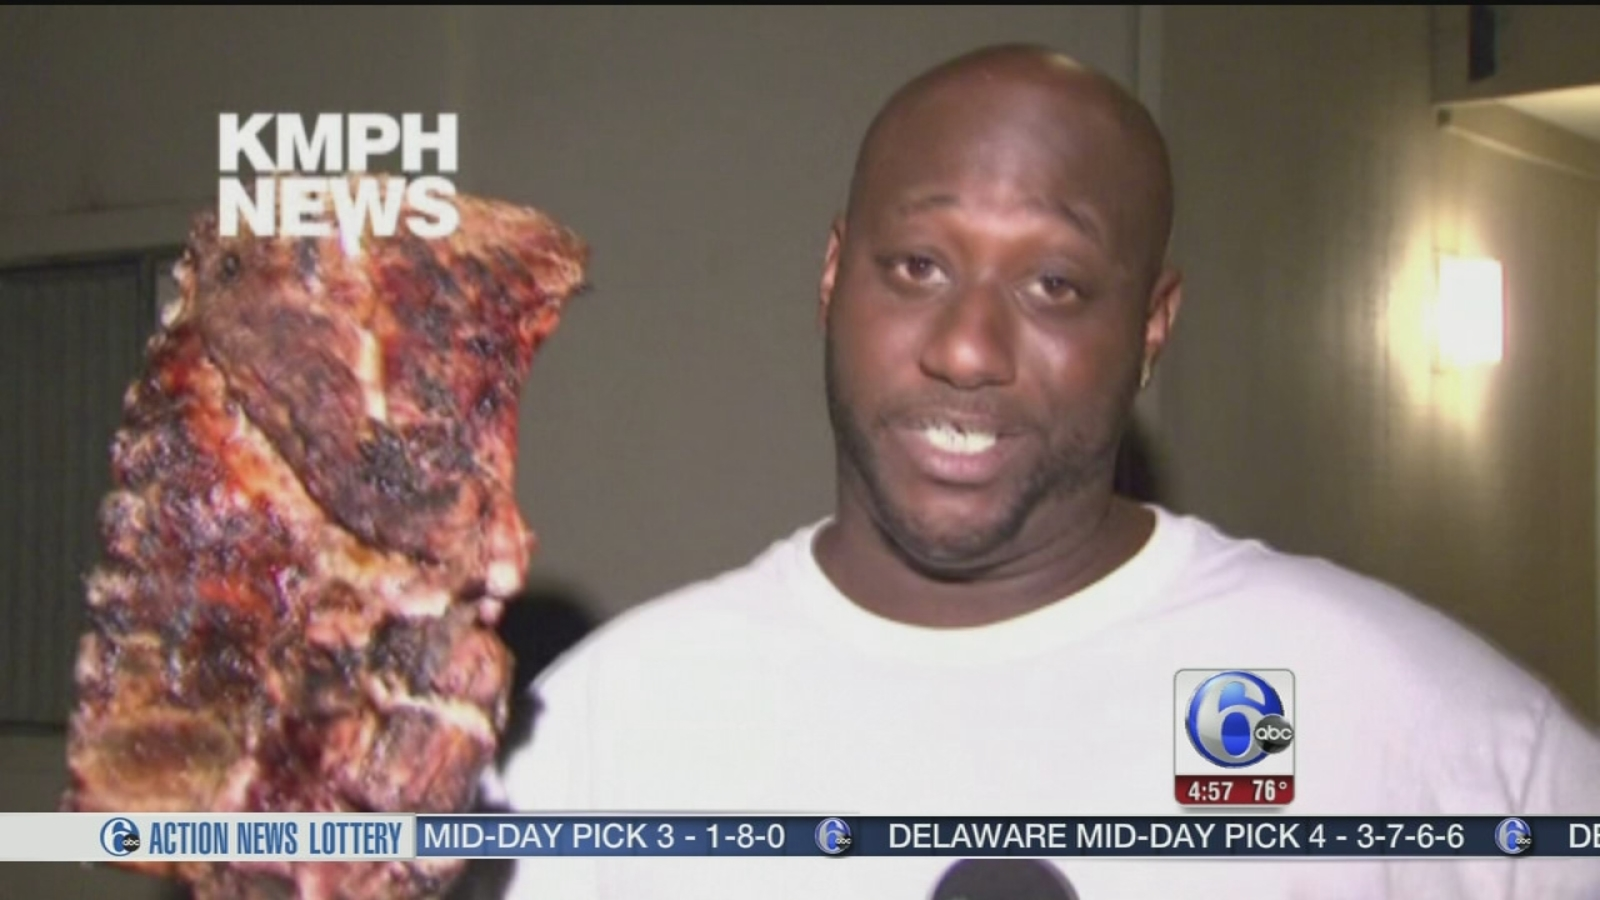 VIDEO: Man saves family, slab of ribs in apt  fire